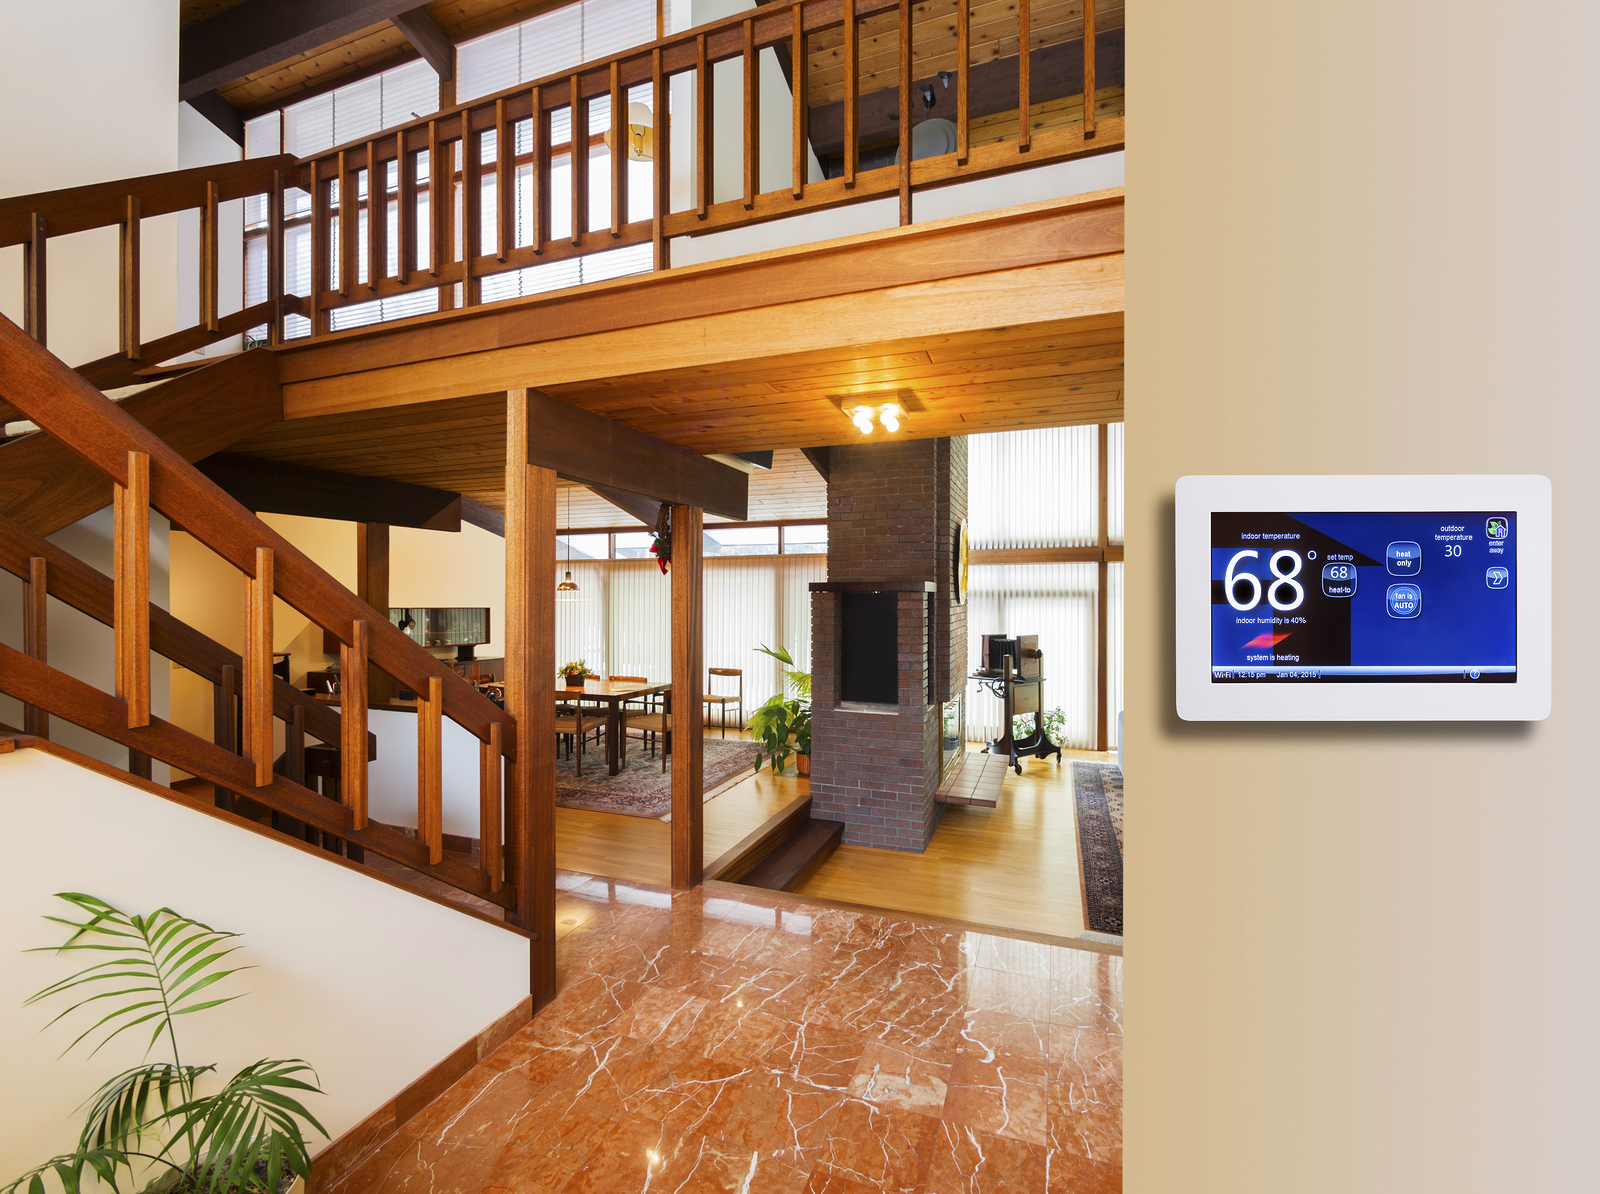 Programmable Thermostat: A Handy Overview